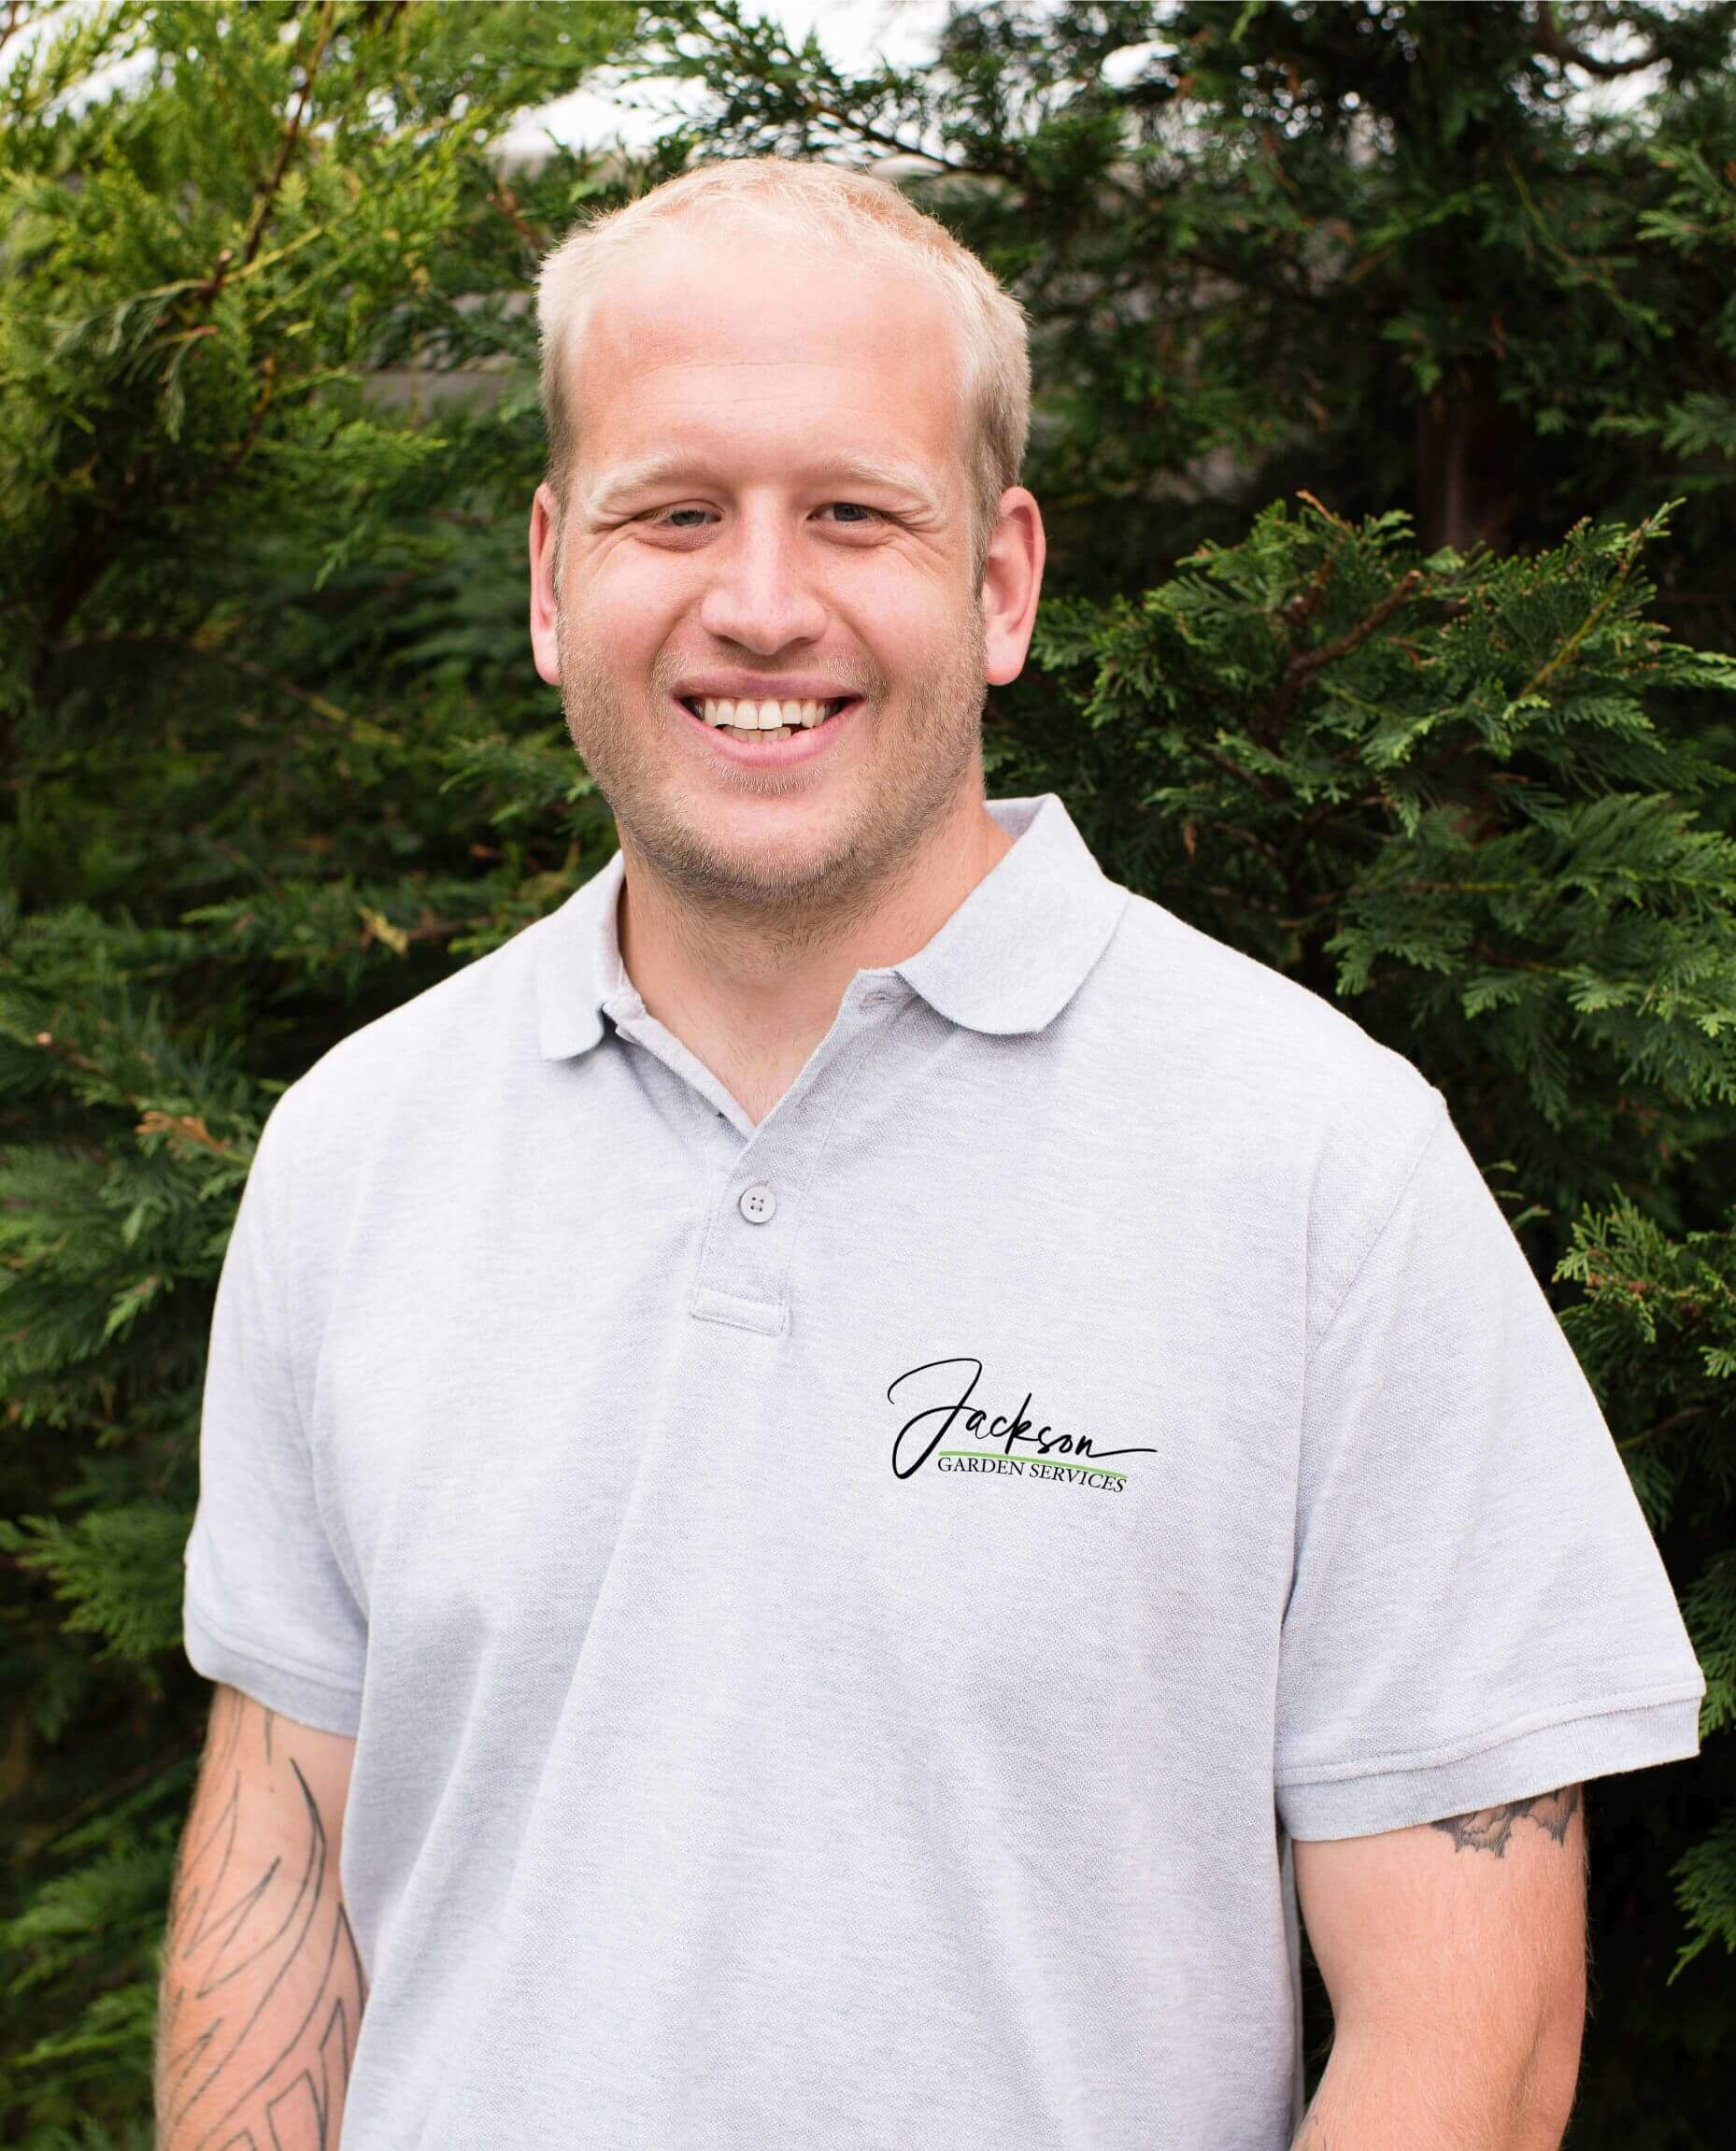 About Us - Shane Jackson, Plymouth Gardener